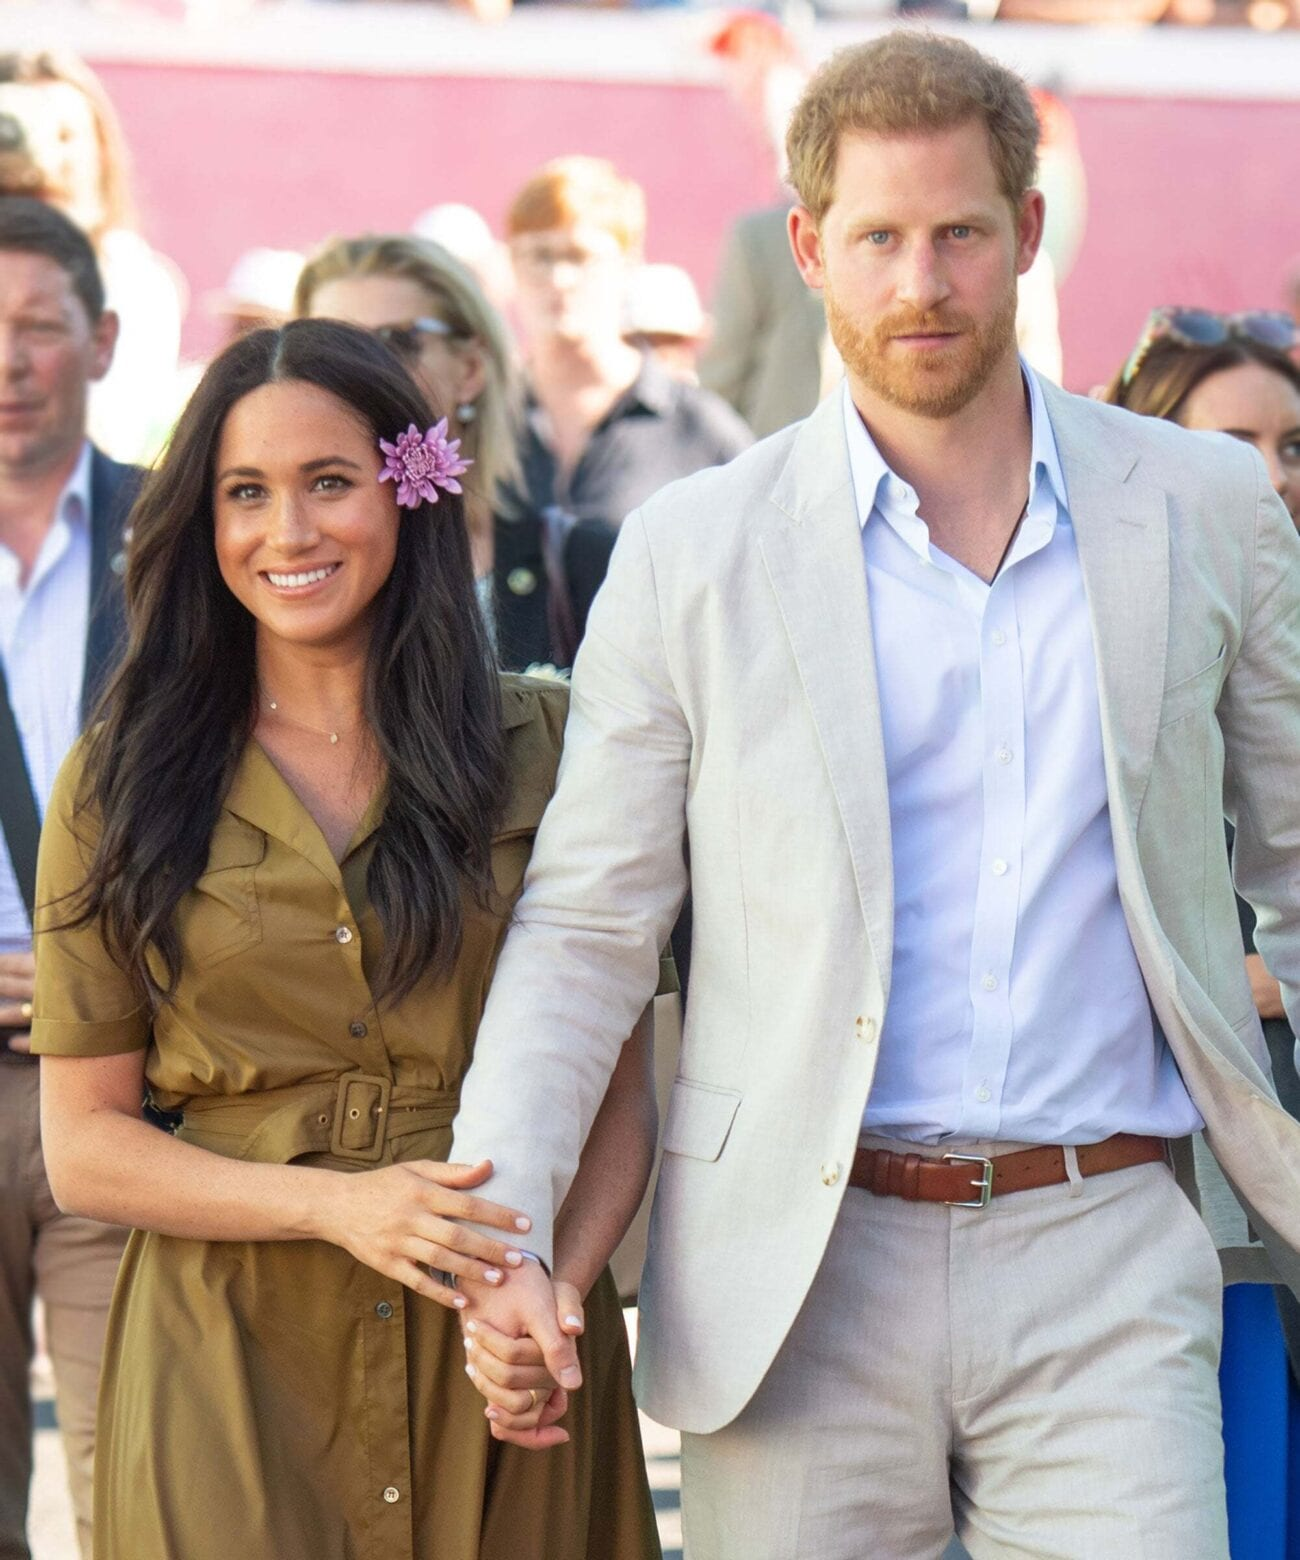 Why did Prince Harry and Meghan Markle suddenly back out of a charity event? Discover if keeping their net worth is their biggest priority now.